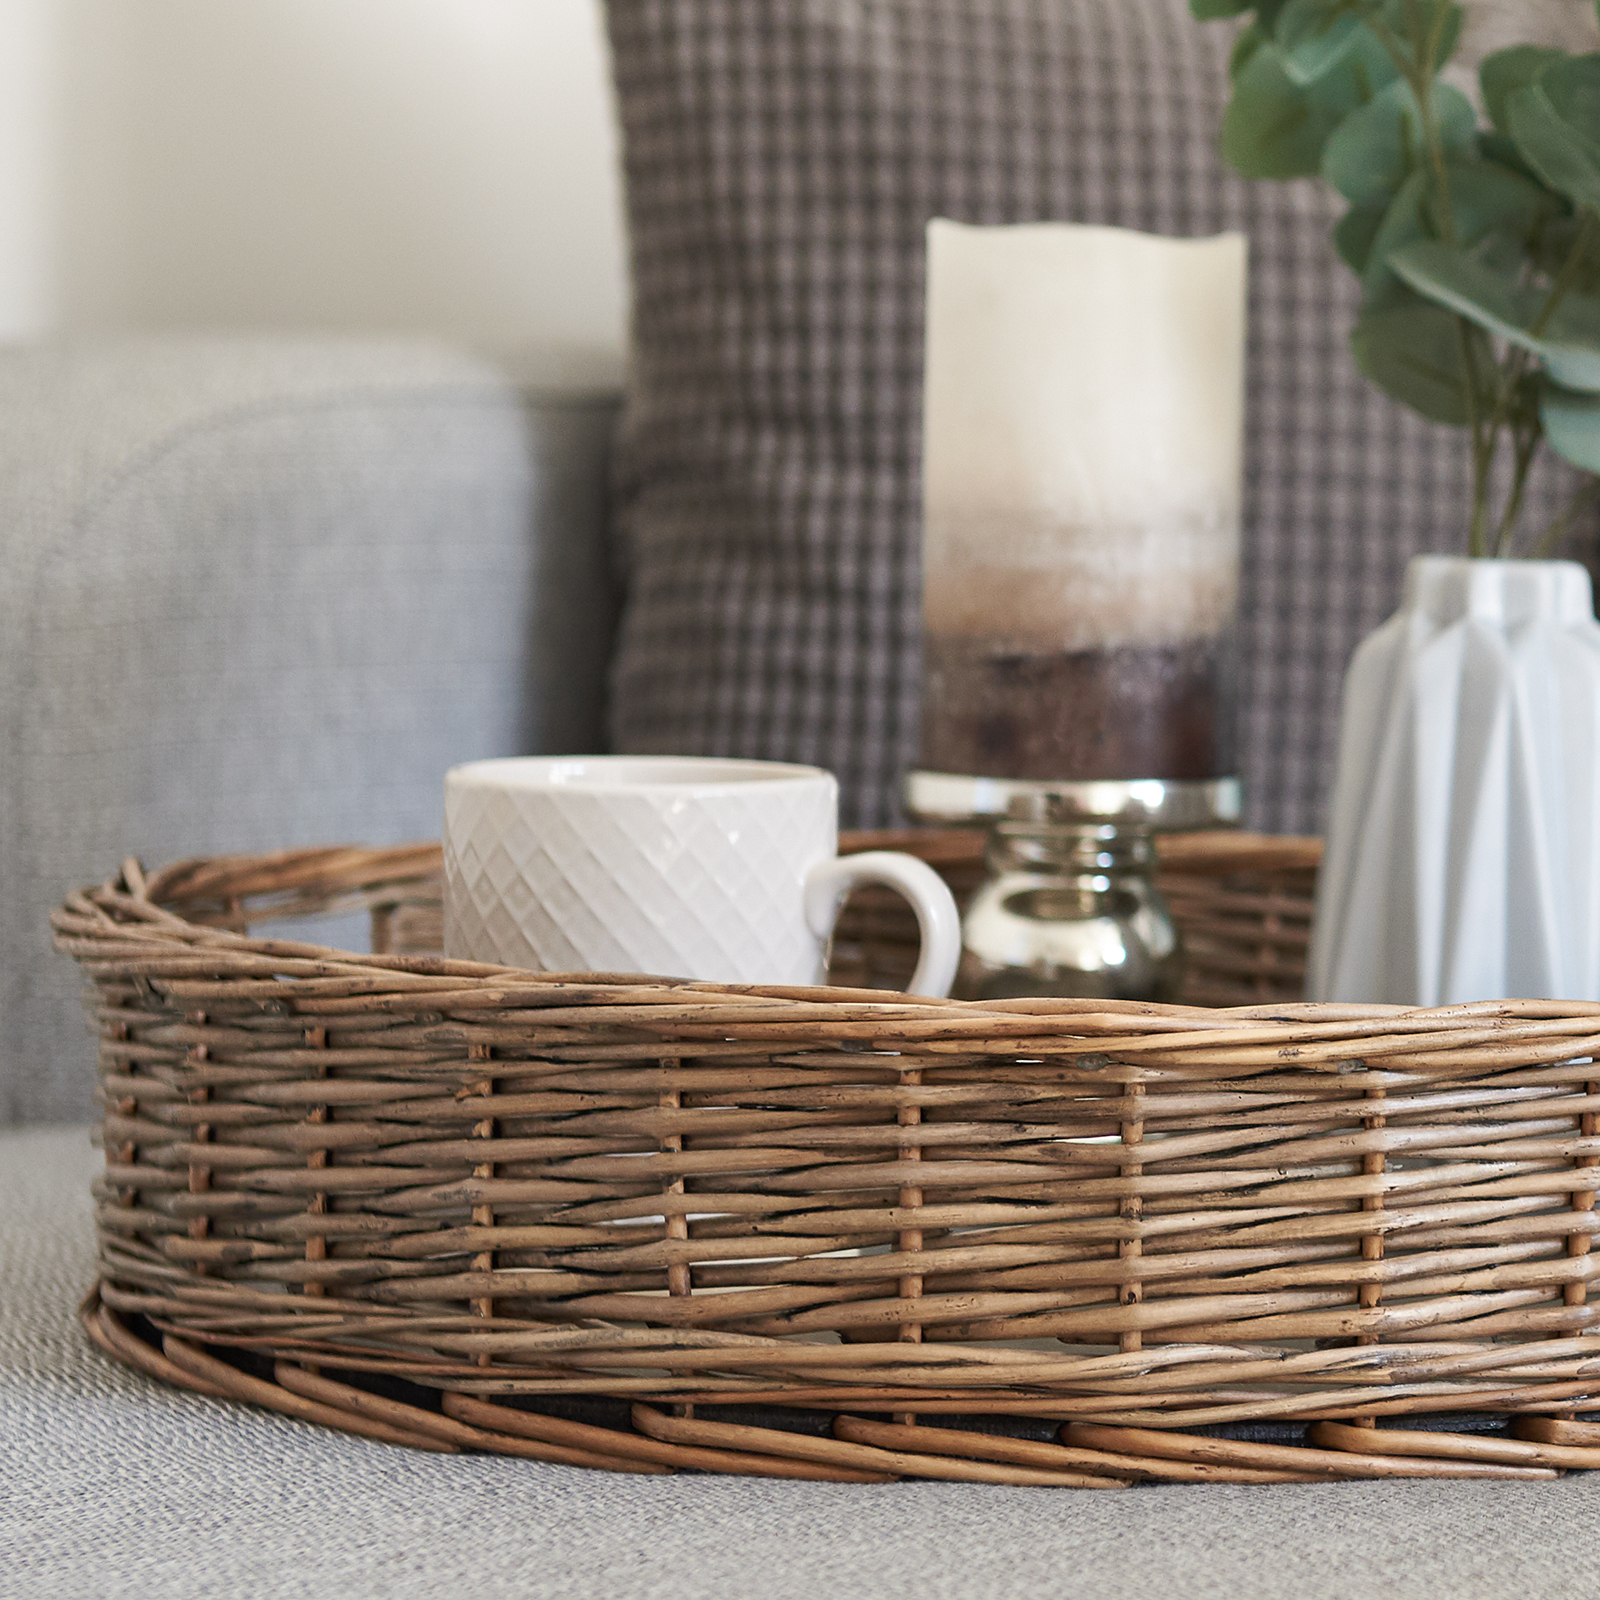 Hartleys-Round-Wicker-Serving-Tray-Decorative-Wooden-Platter-Coffee-Table-Decor thumbnail 19